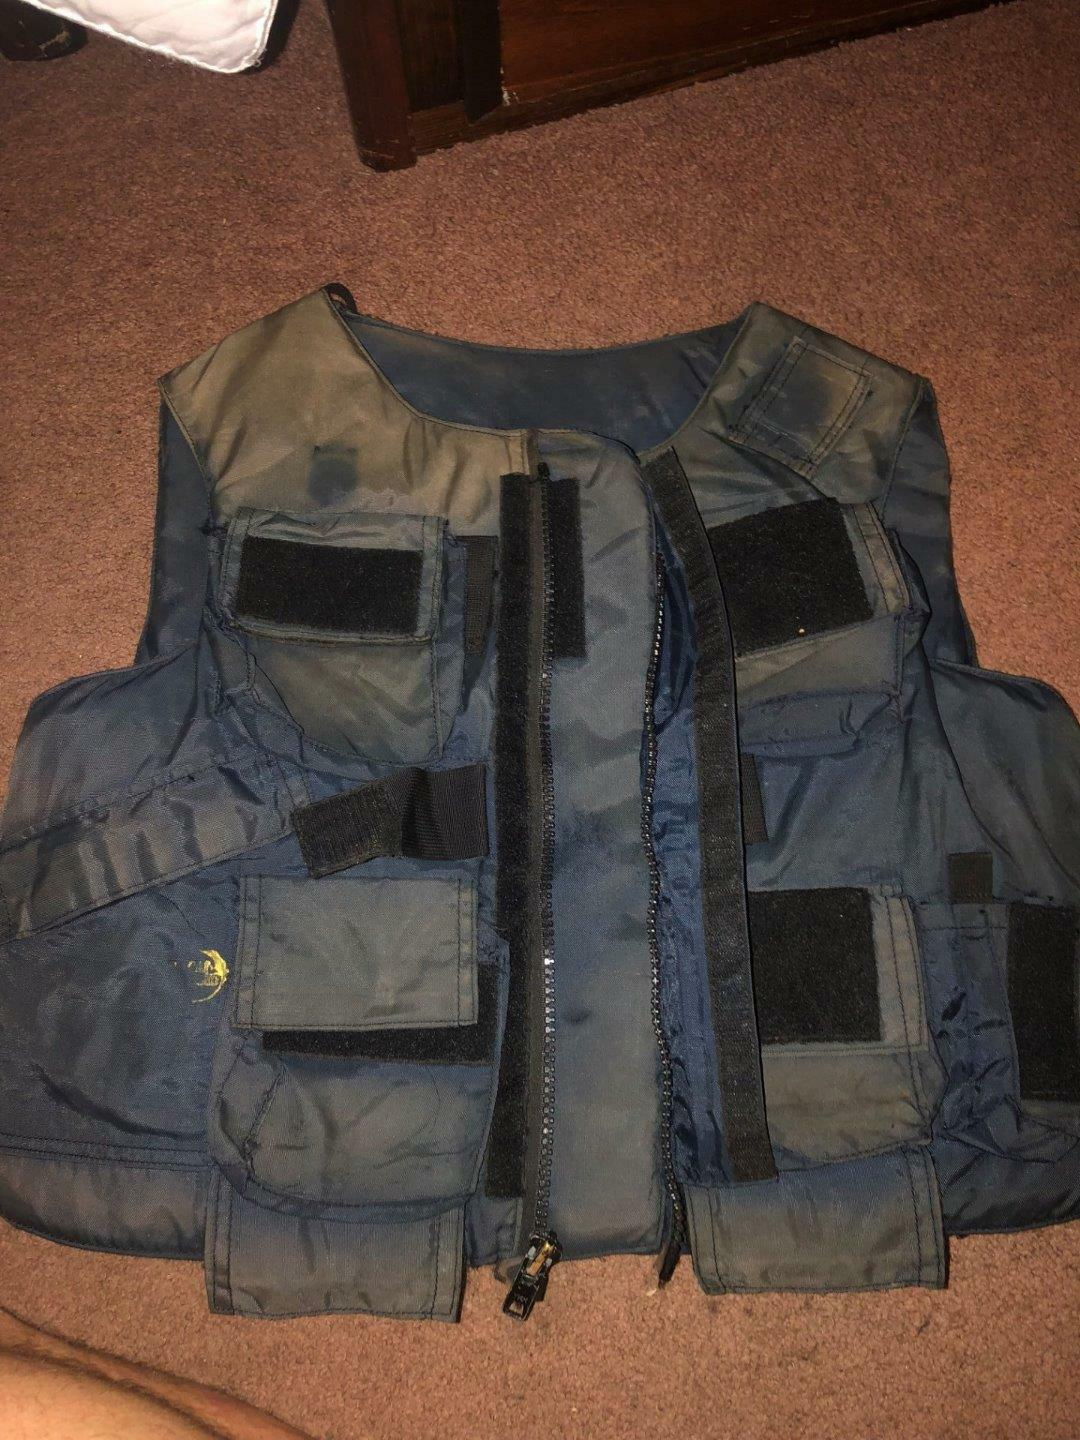 AMERICAN BODY ARMOR  ABA  BULLET PROOF VEST (WITH INSERTS) SIZE  1XRRR